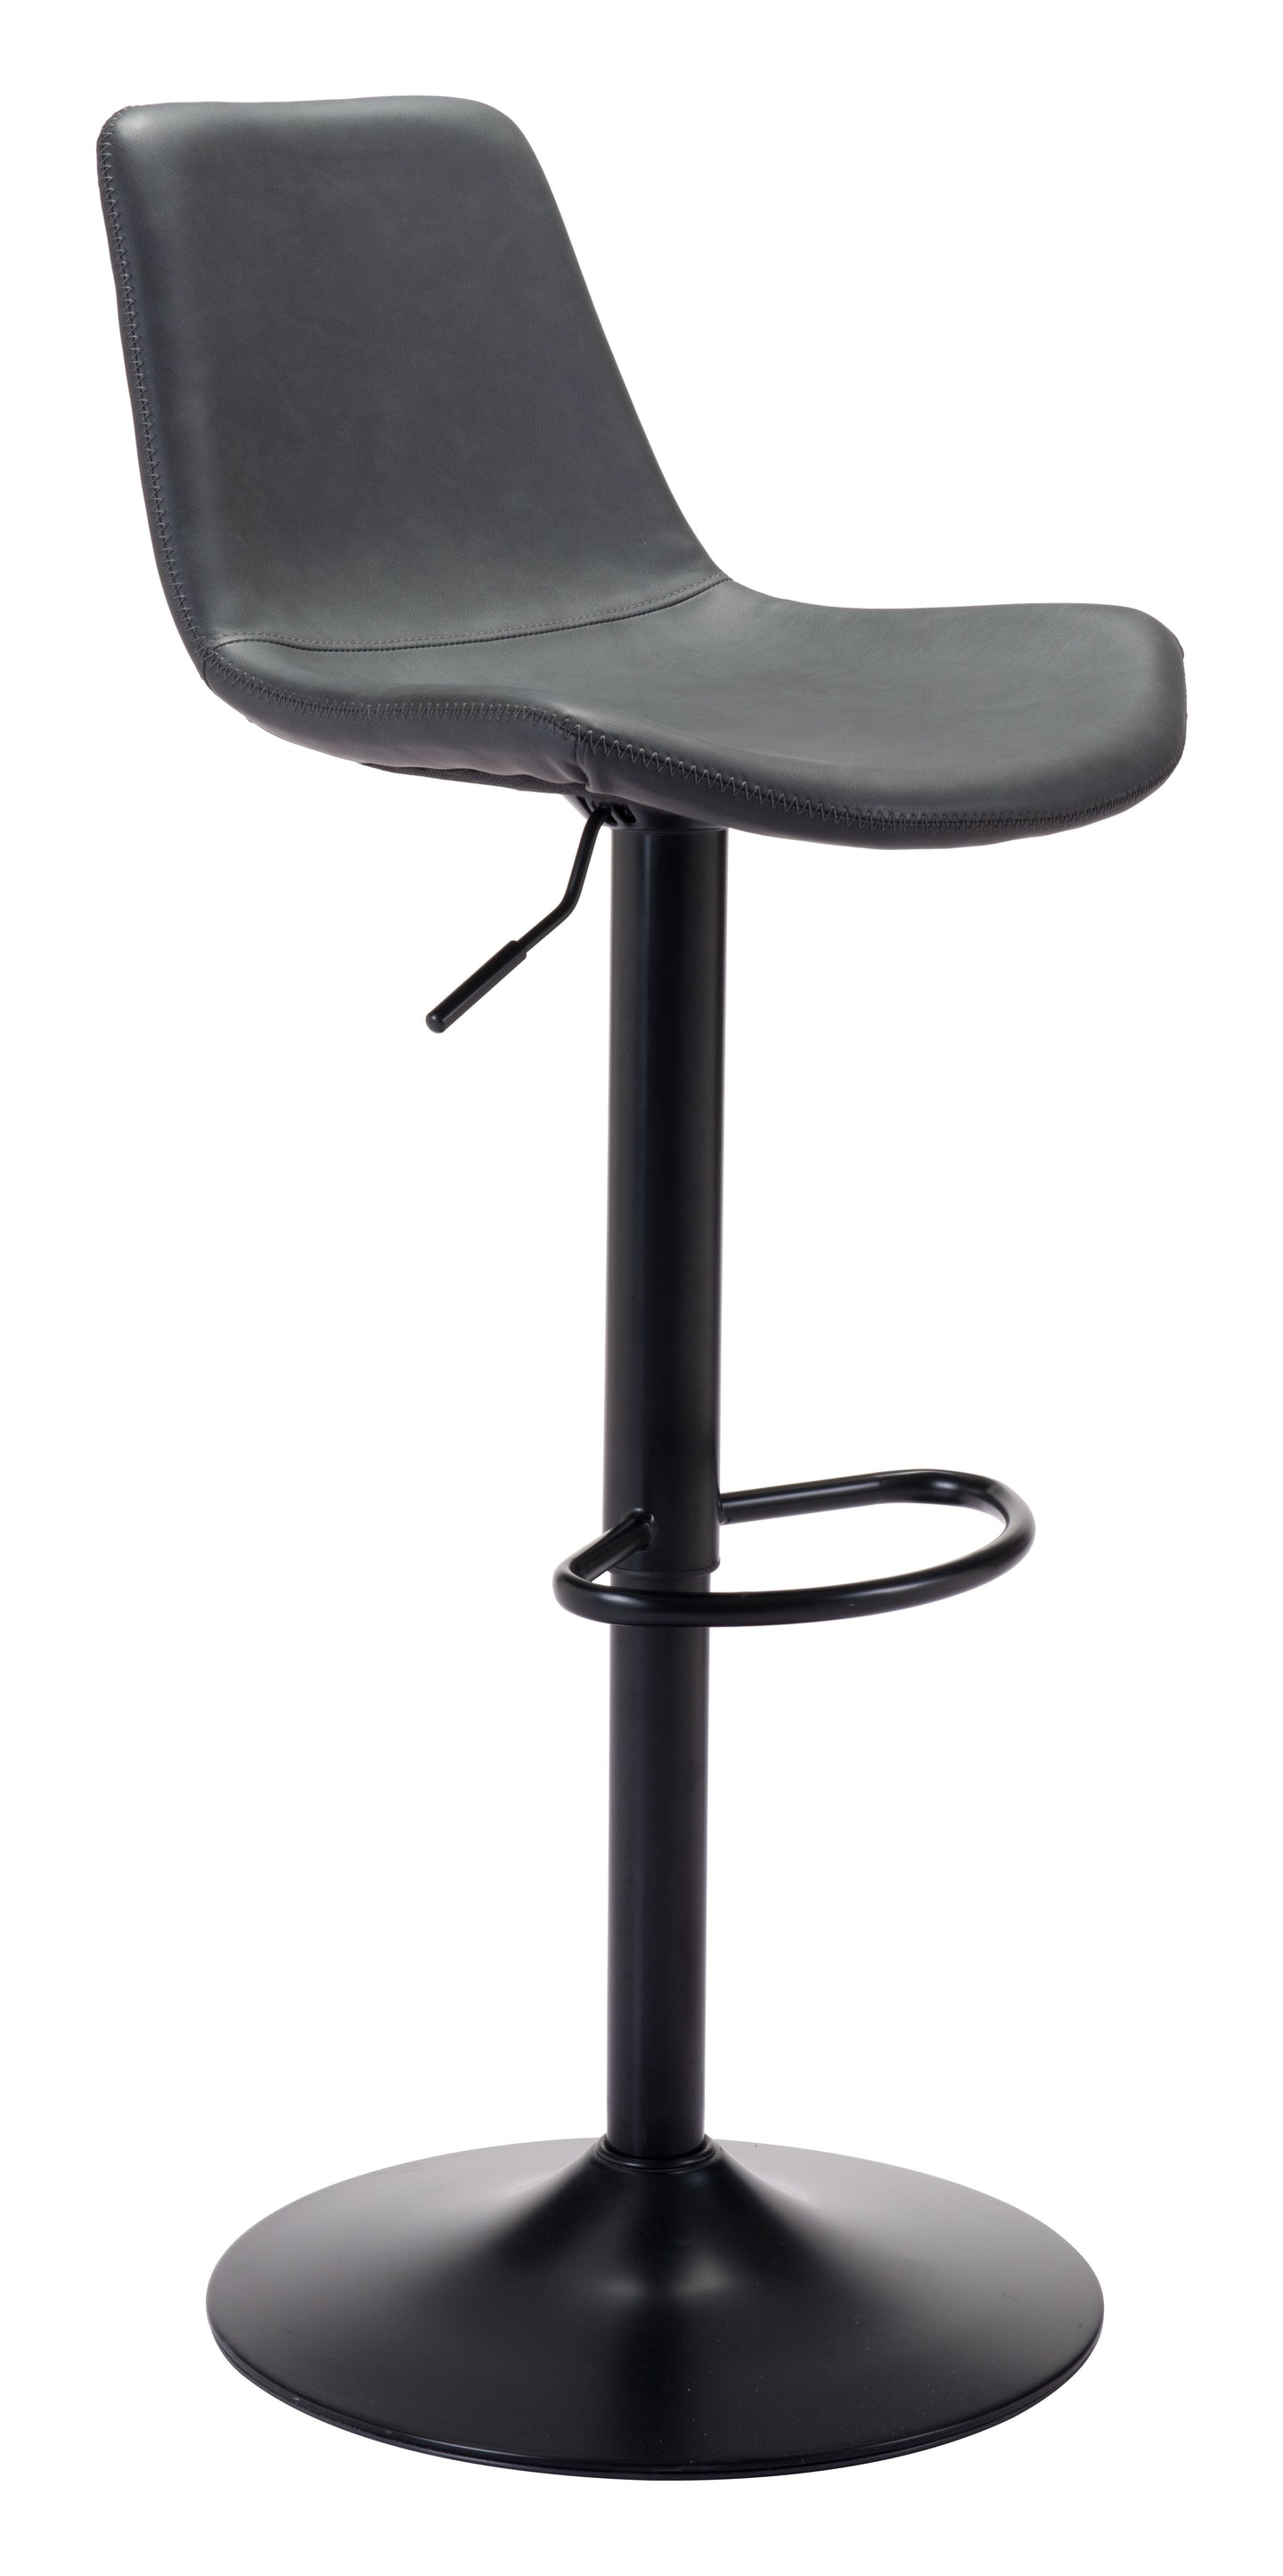 Lakeshore Bar Chair Vintage Dark Gray - Bar